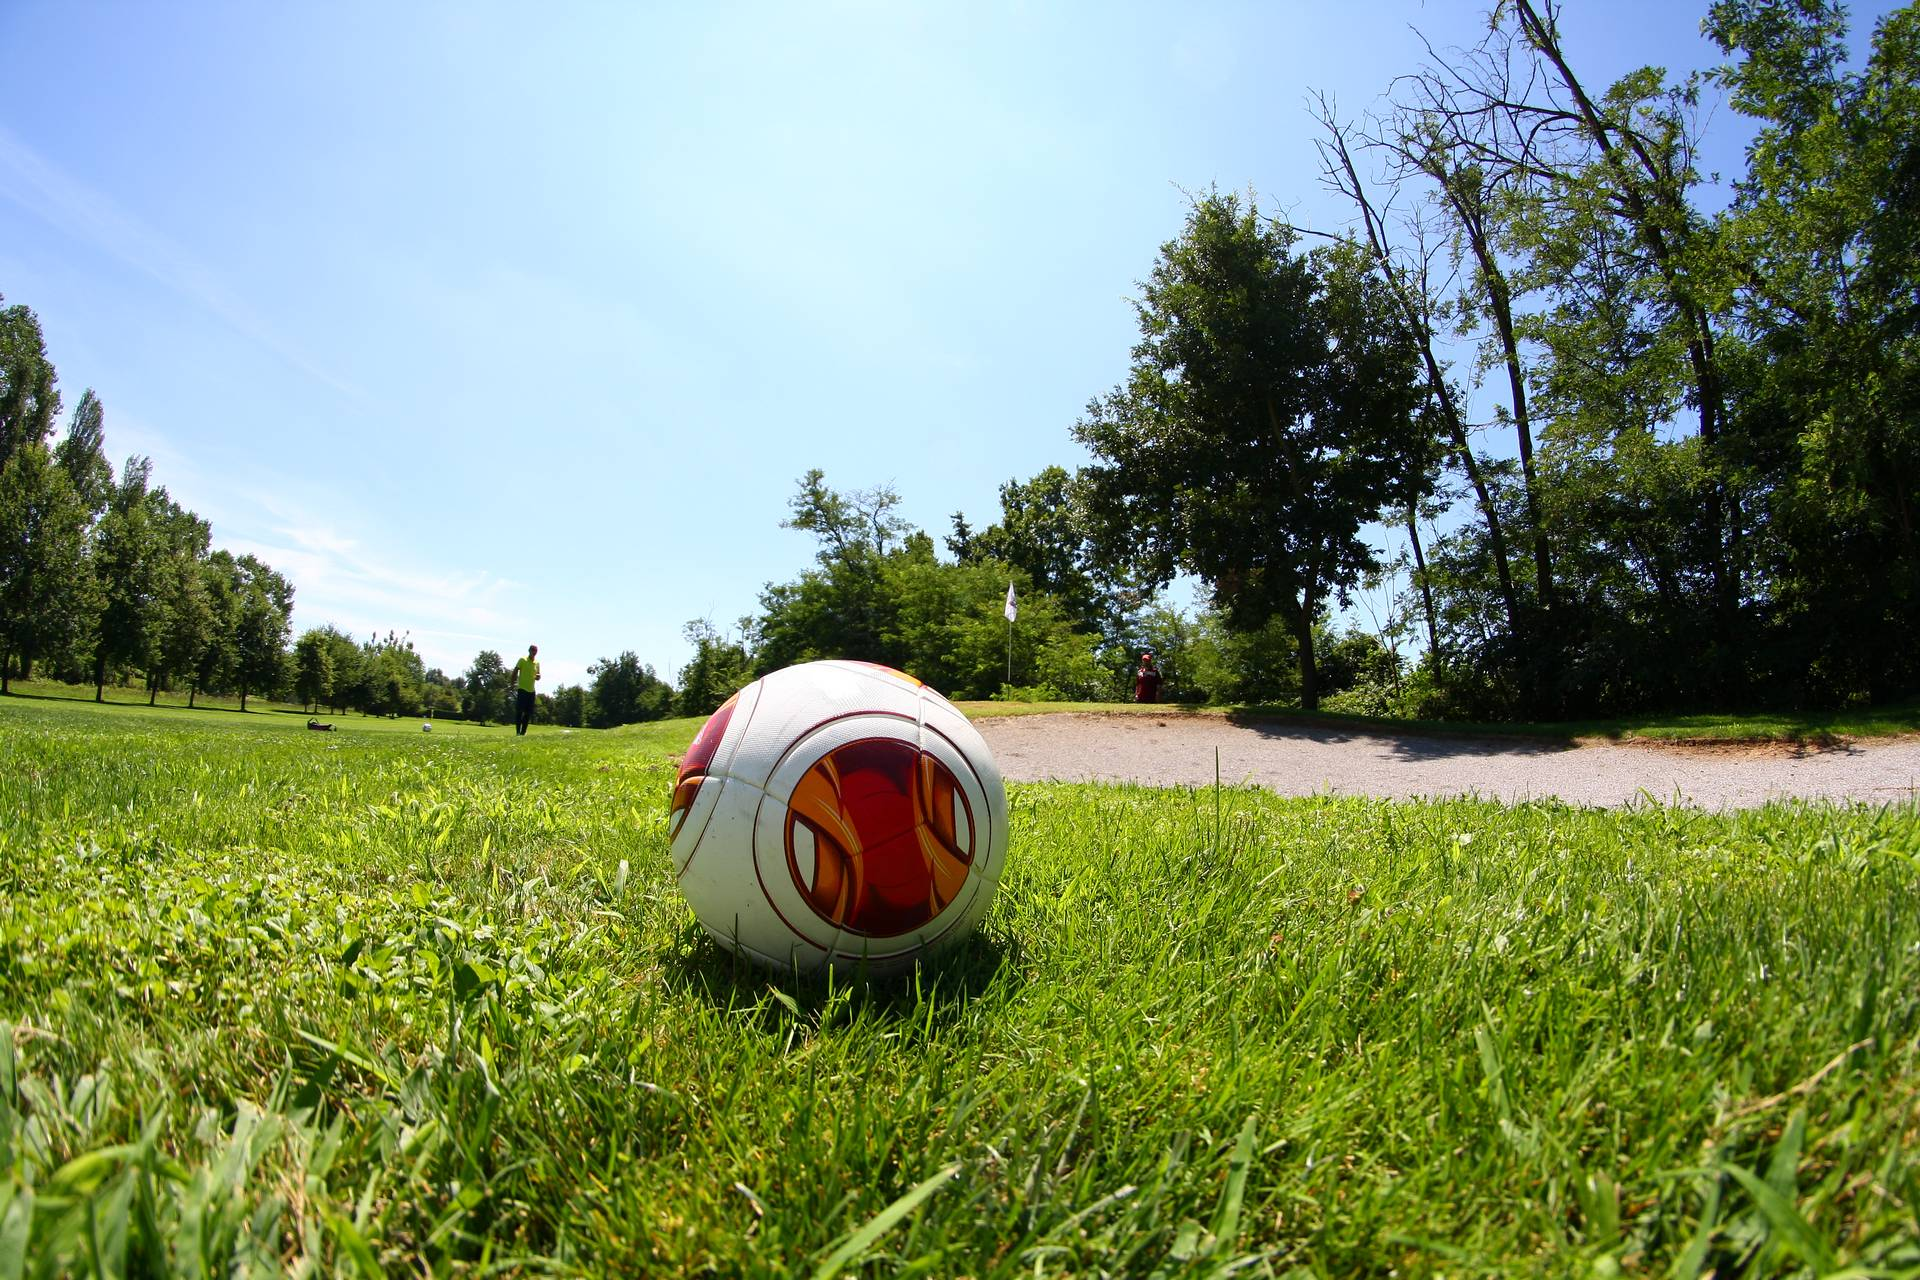 Gioca a Footgolf